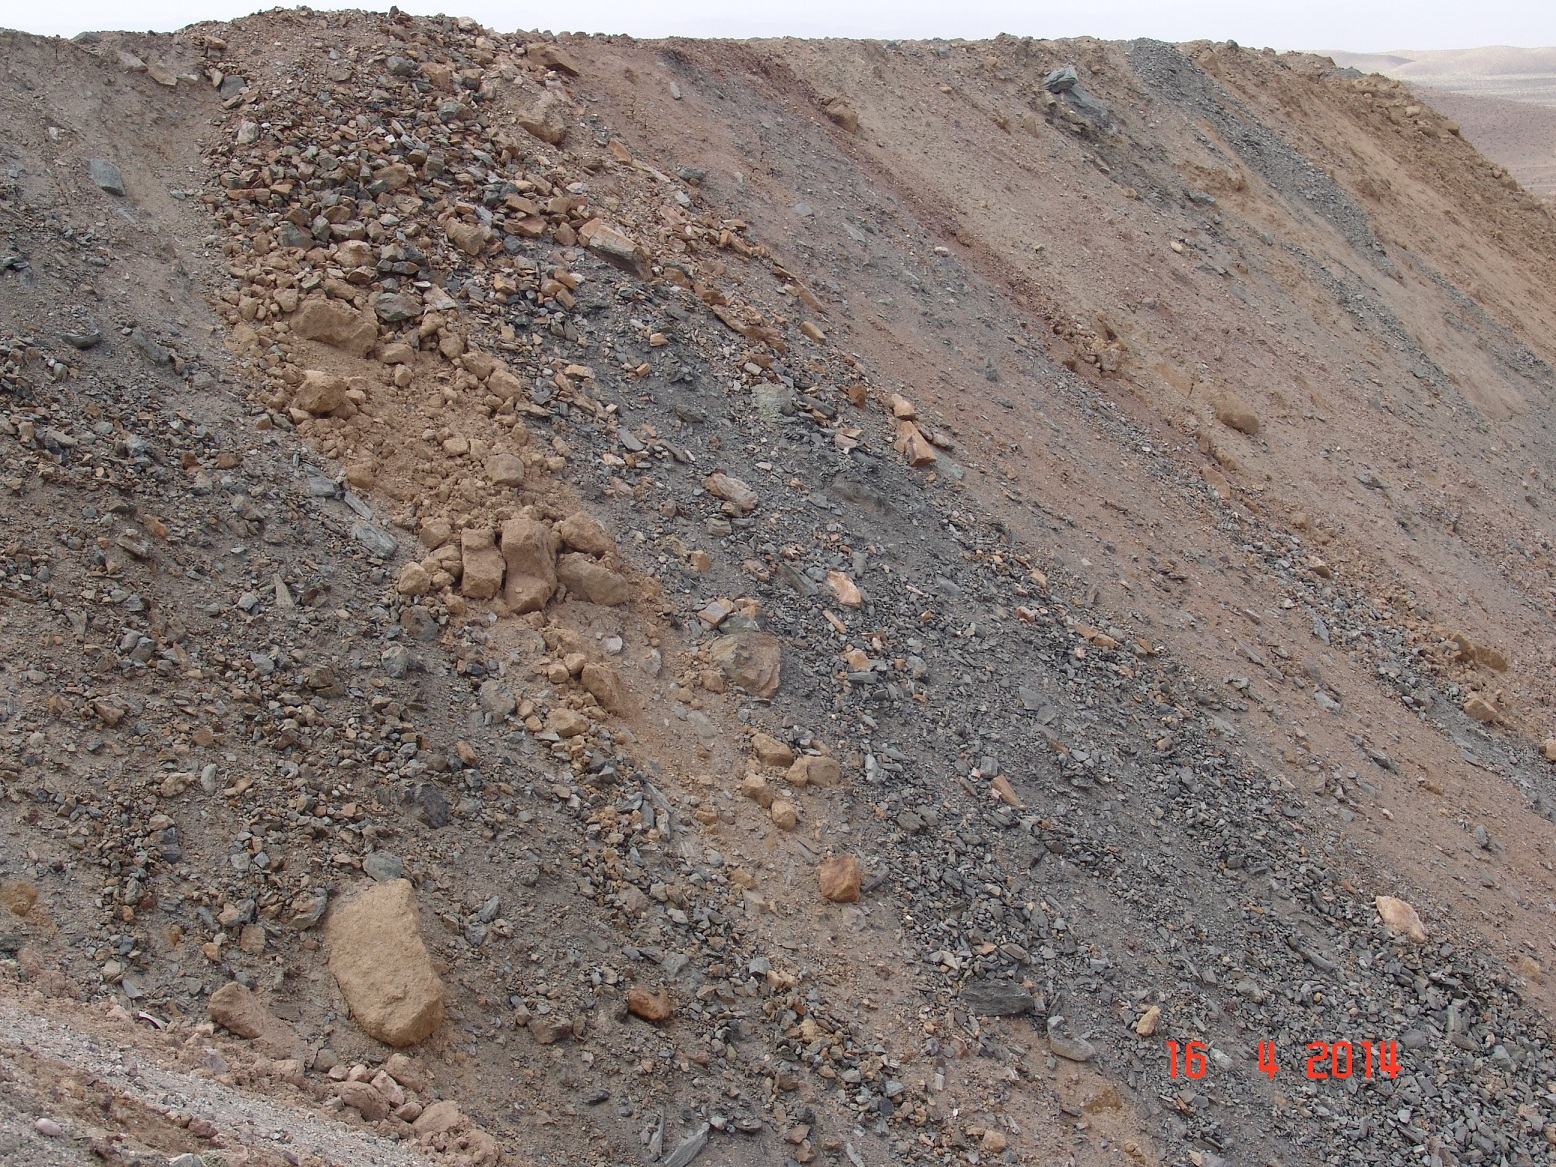 How Can Obtain The Geomechanical Properties Cohesion And Friction Angle Of Soil Rock Mixture